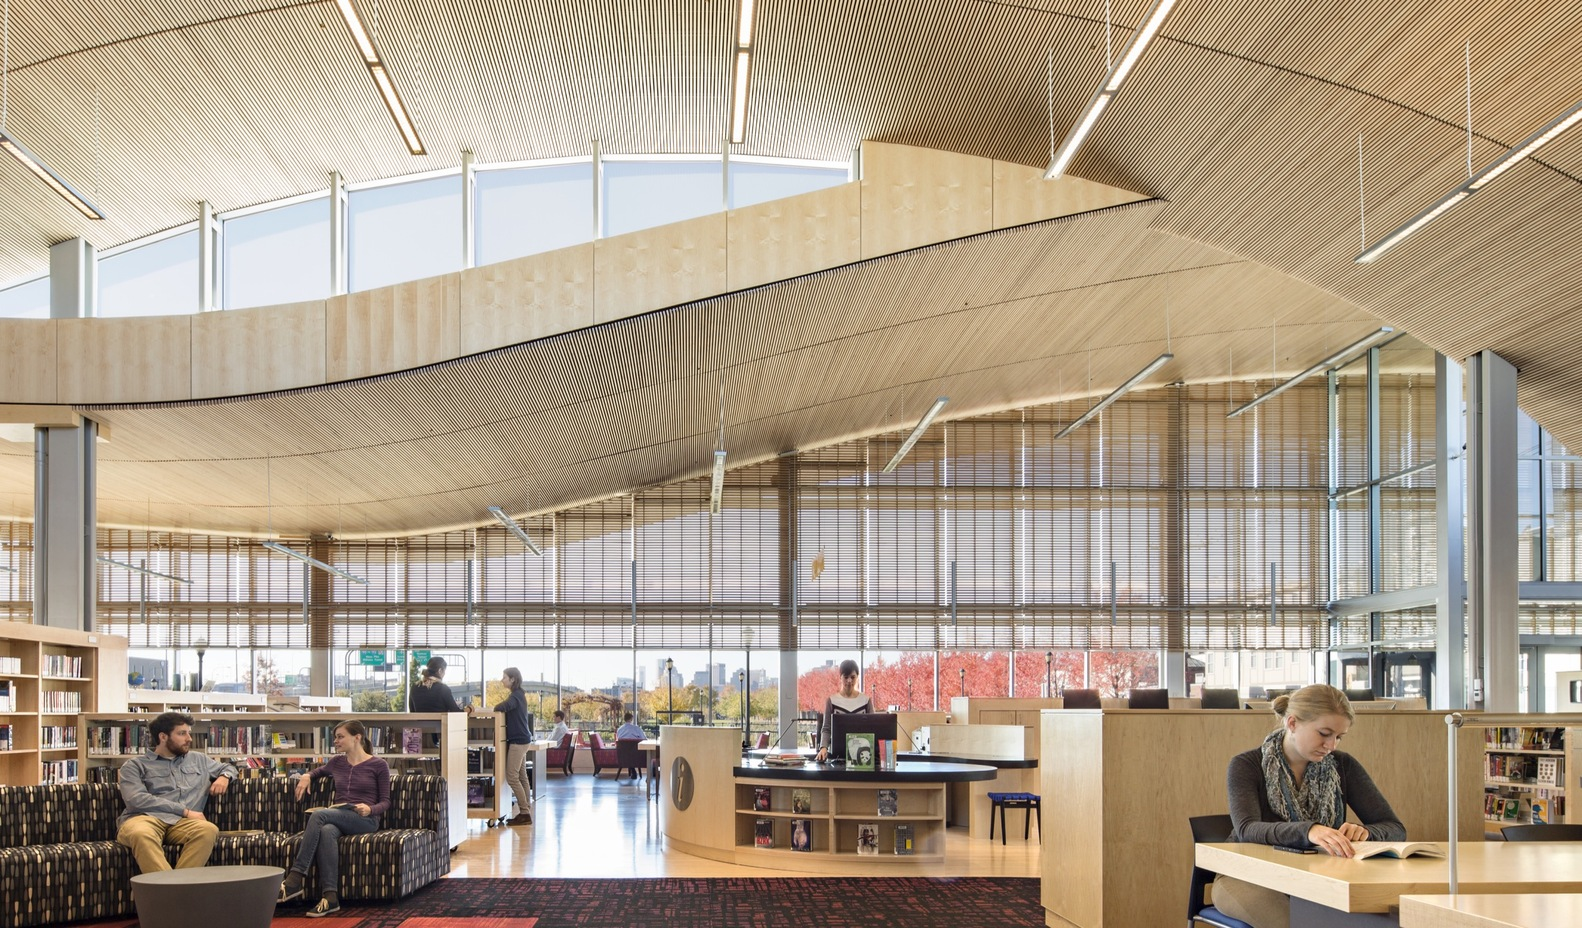 Gallery of 8 Exemplary Libraries Selected as Winners of 2017 AIAALA